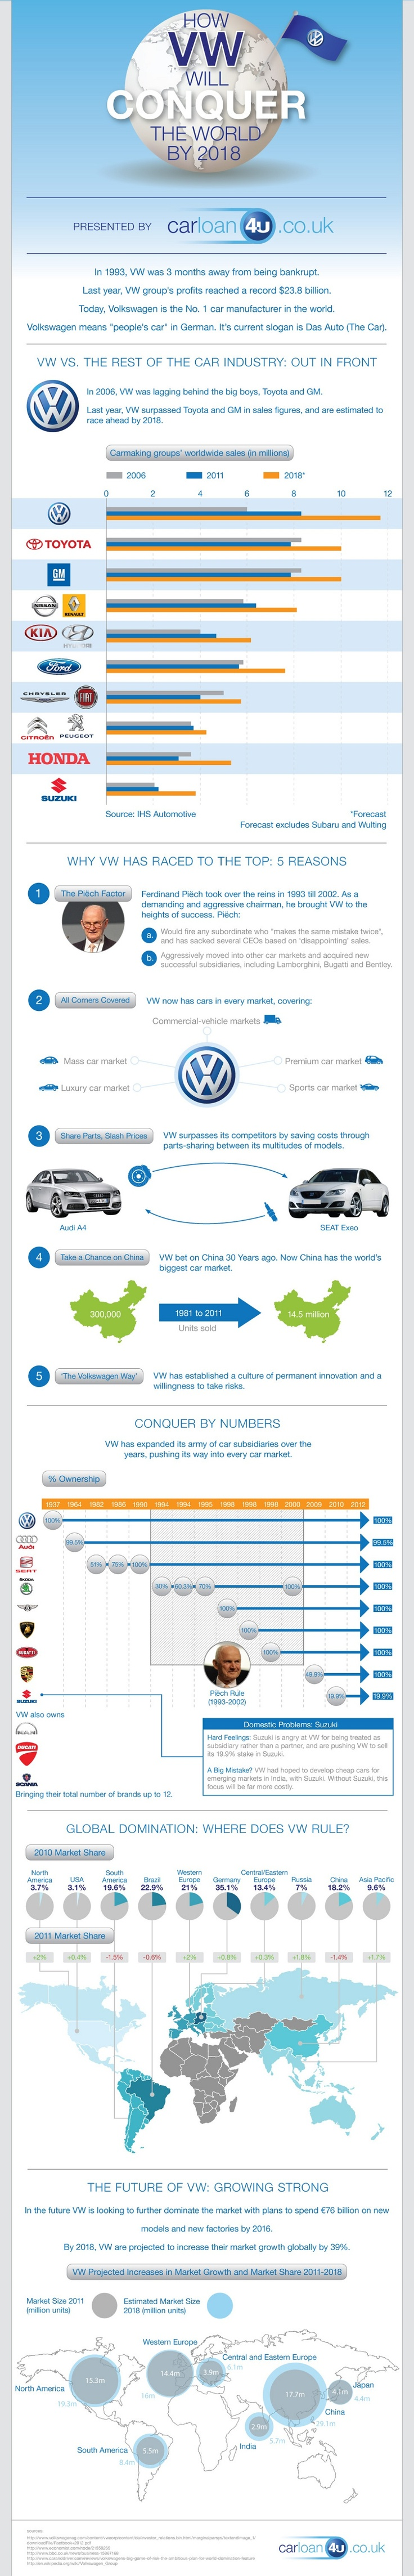 How VW Will Conquer the World by 2018